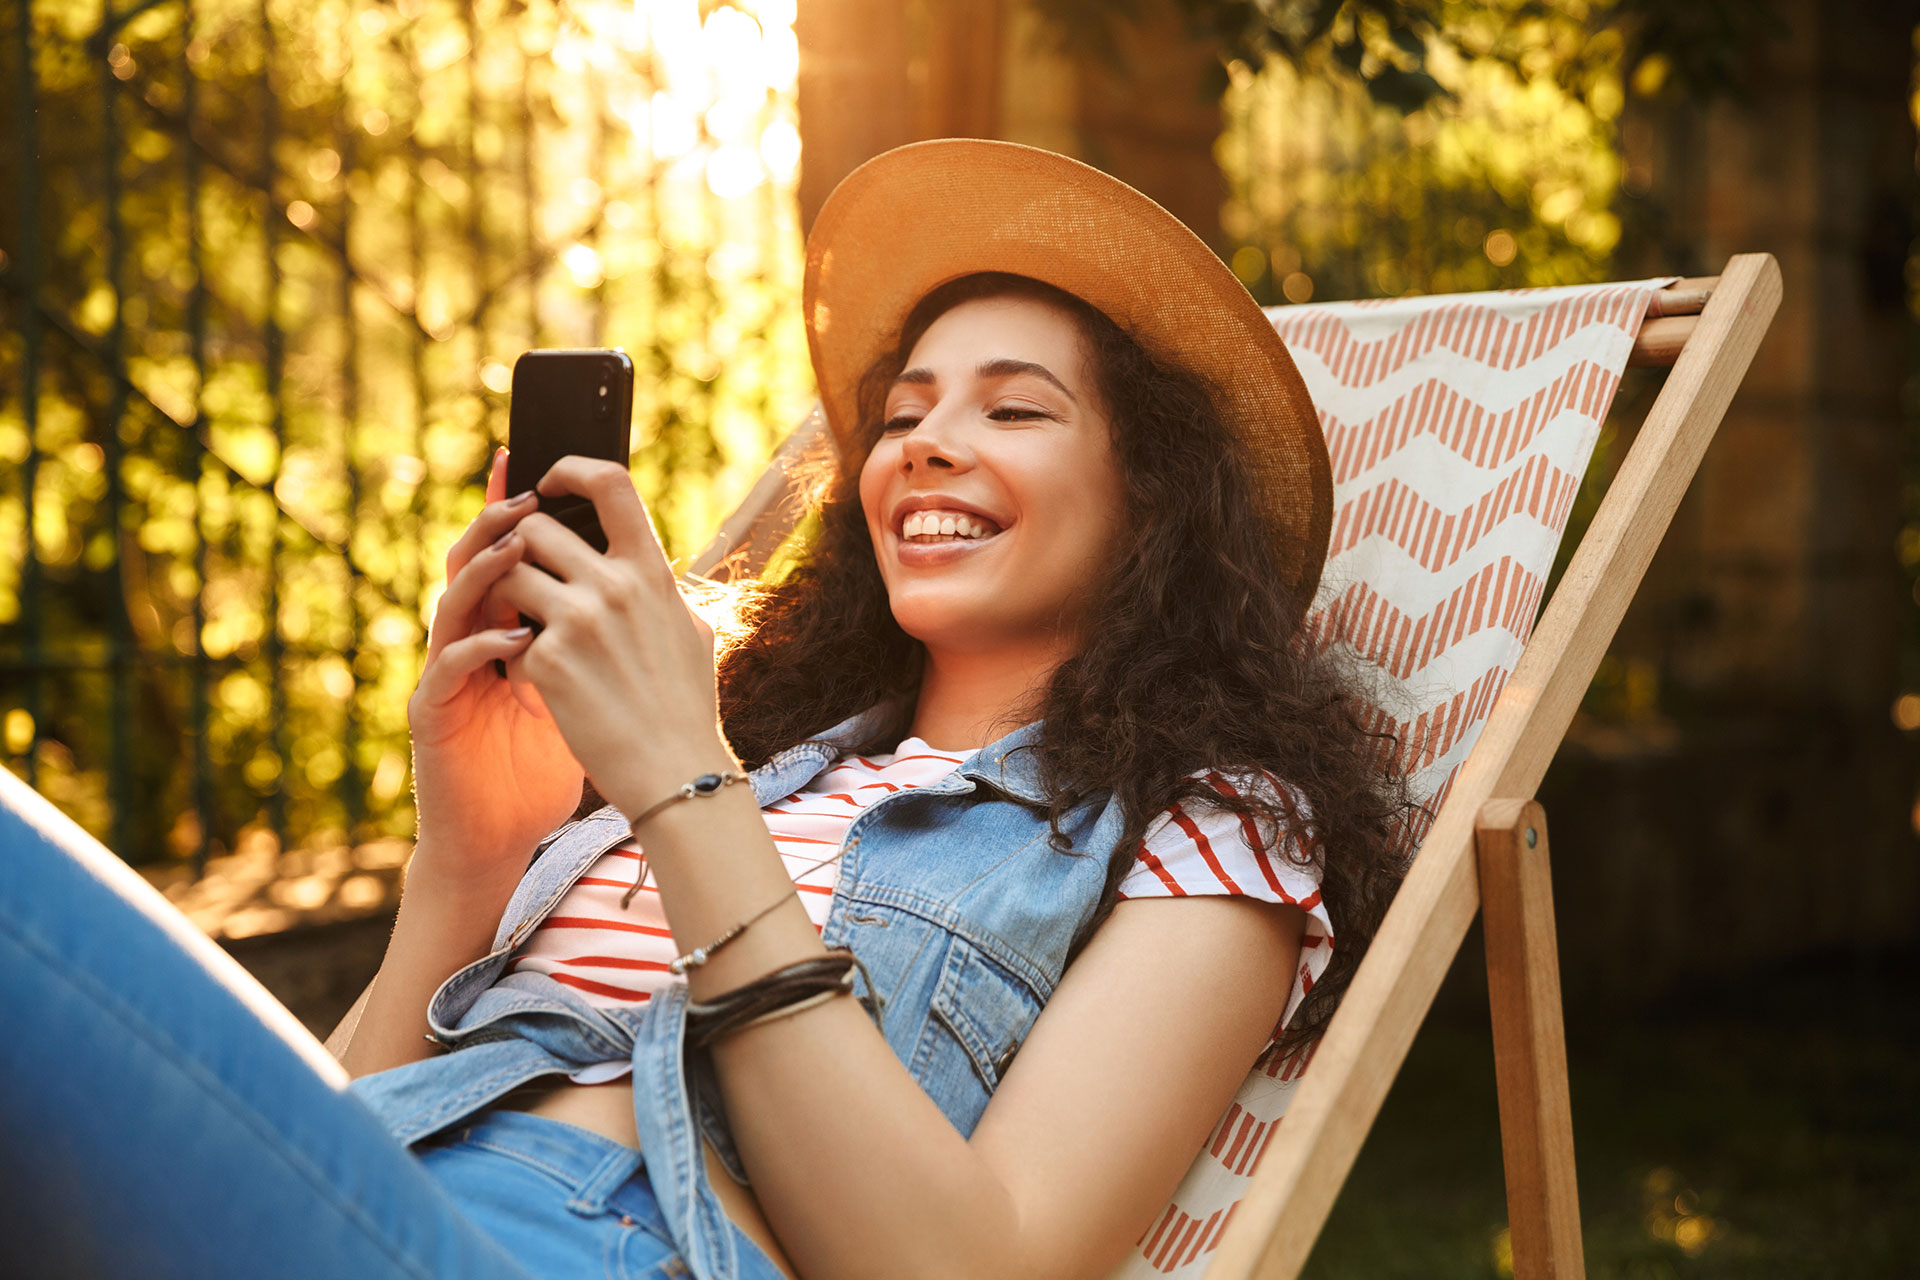 Happy young woman relaxing in a lawn chair, smiling at her mobile phone.